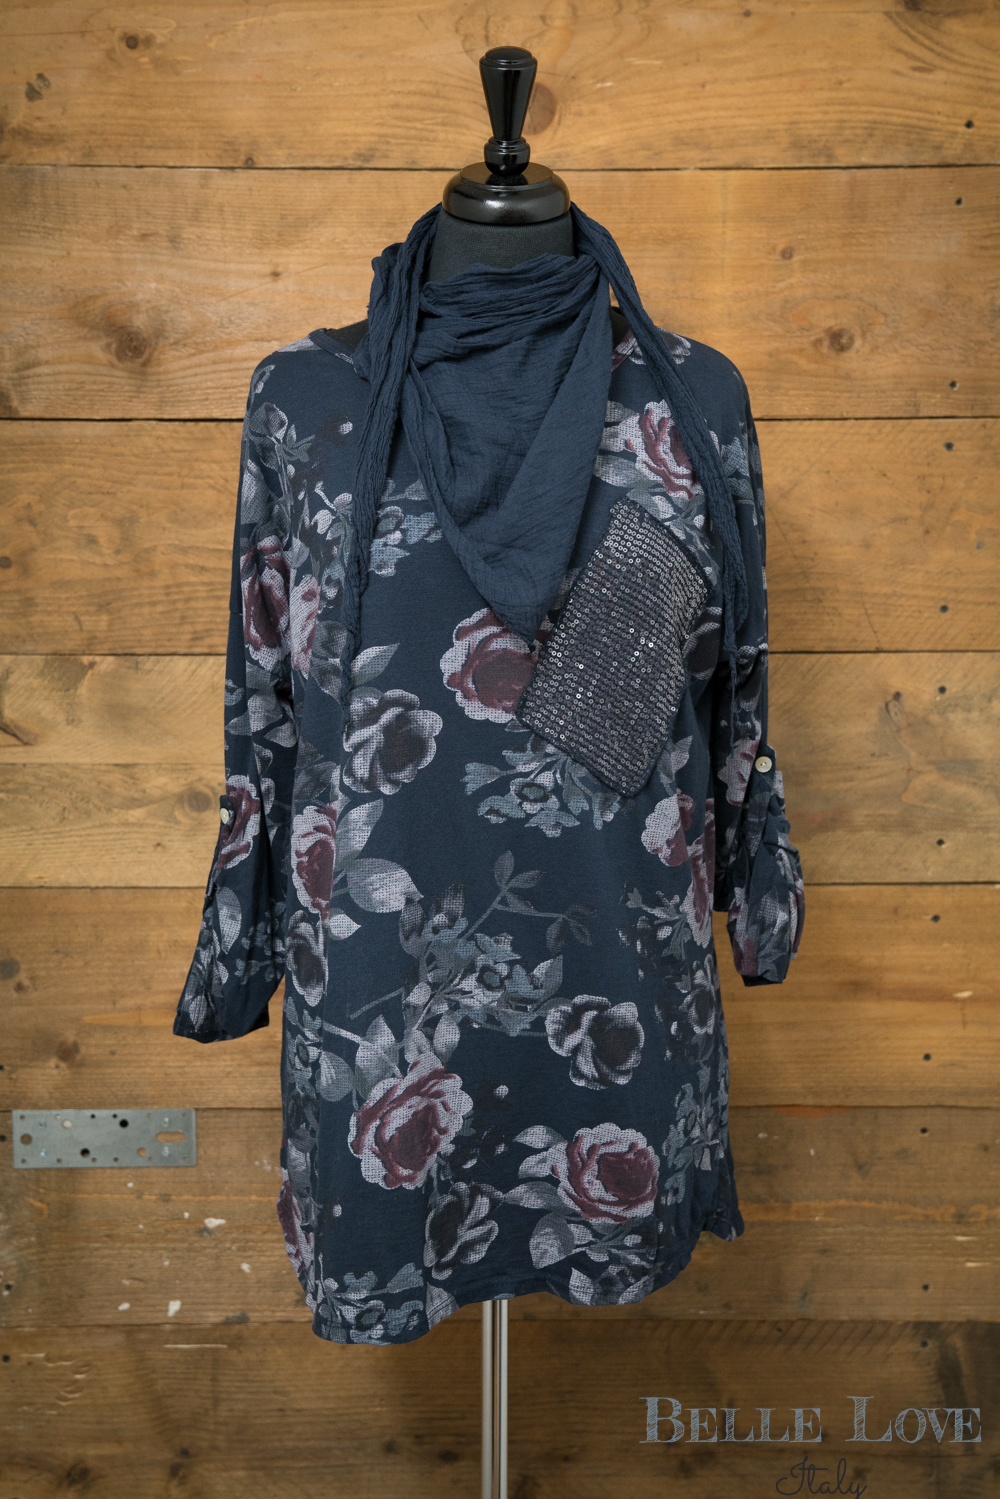 Belle Love Italy Floral Print Scarf Top